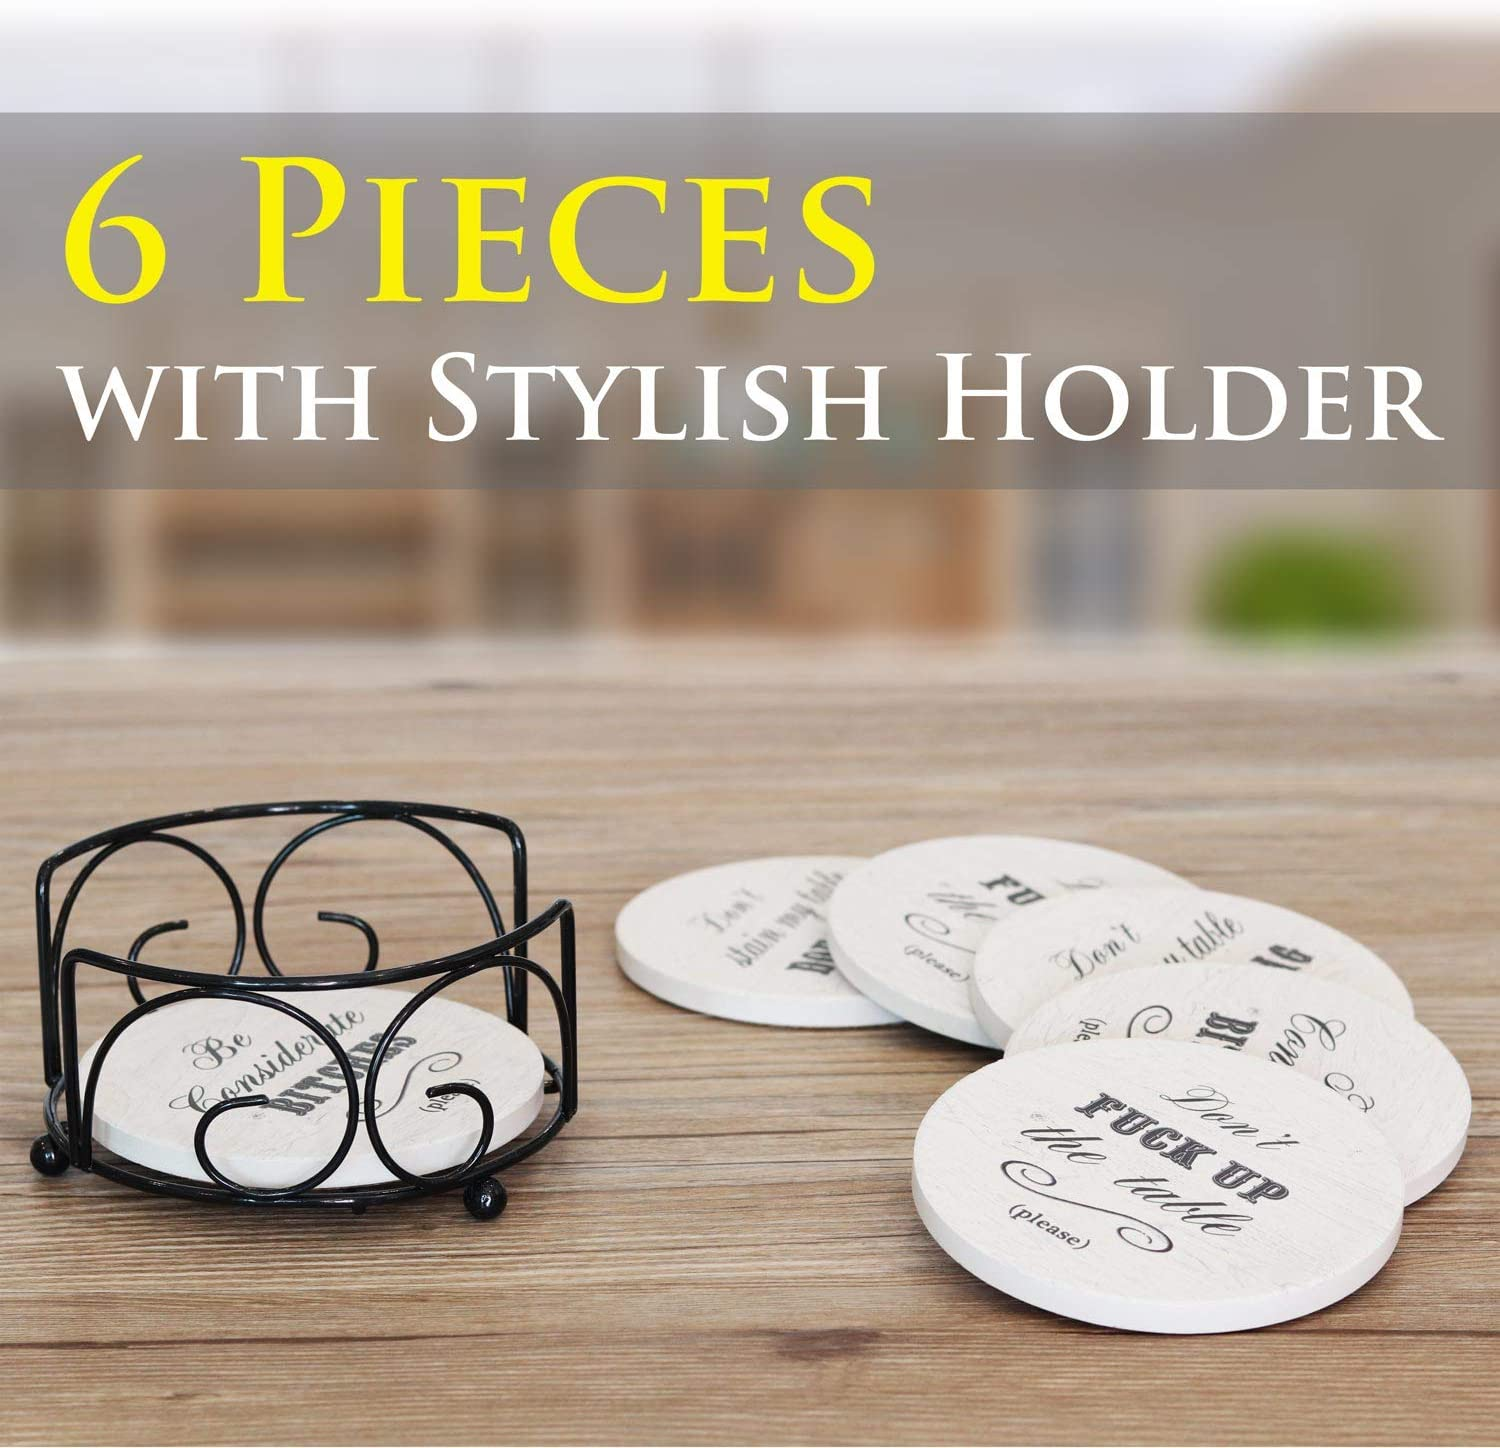 Women Housewarming Man Cave Decor Hostess Gifts Ideas Coasters for Drinks Absorbent Men Holiday Party Absorbing Stone Coaster with Holder Present for Friends 6 Pcs Novelty Gift Set Birthday